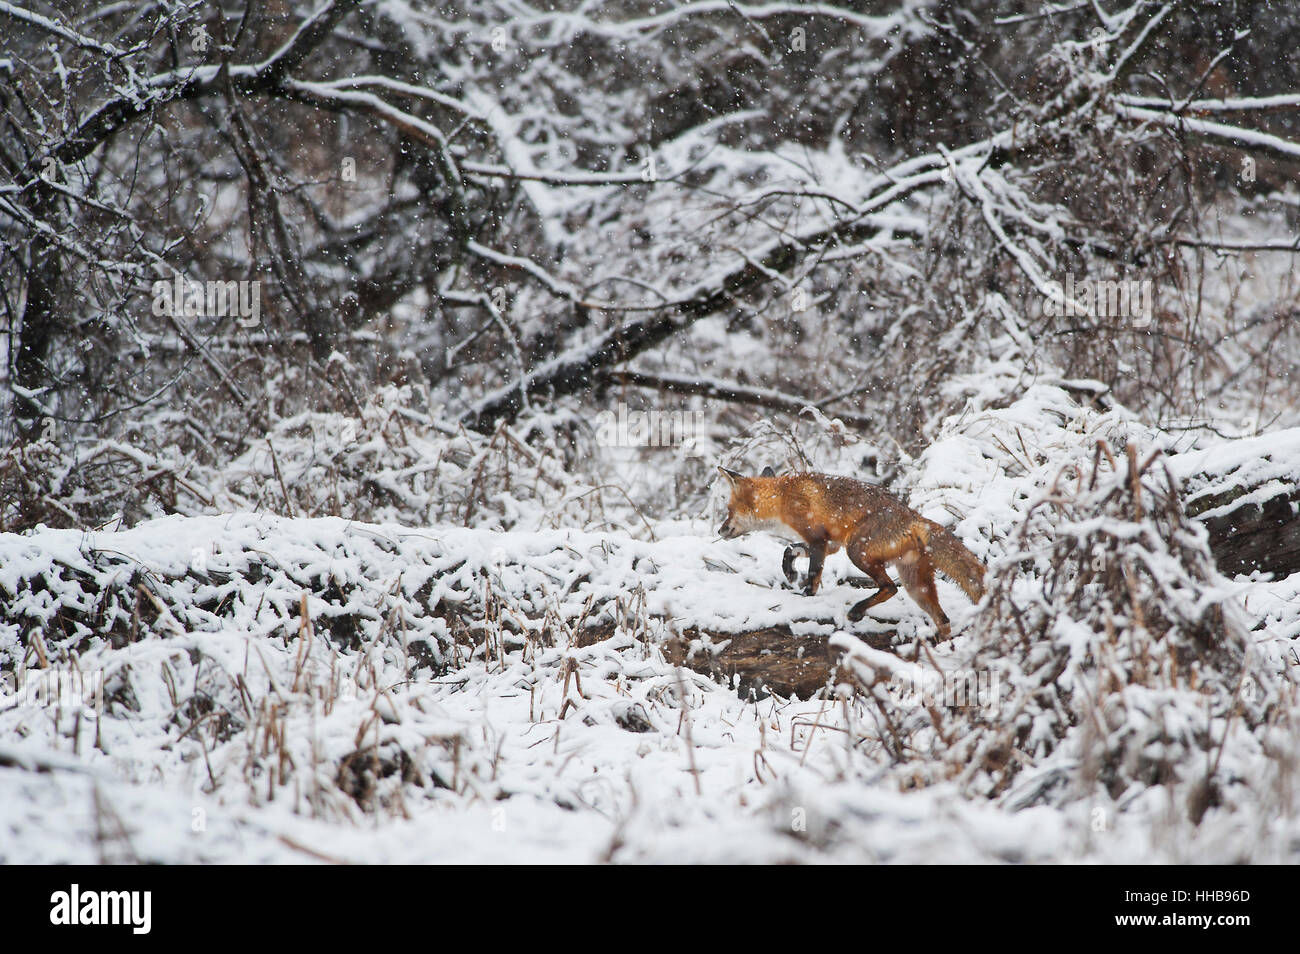 A Red Fox walks along a fallen tree in an early spring snow in Southern New Jersey. - Stock Image